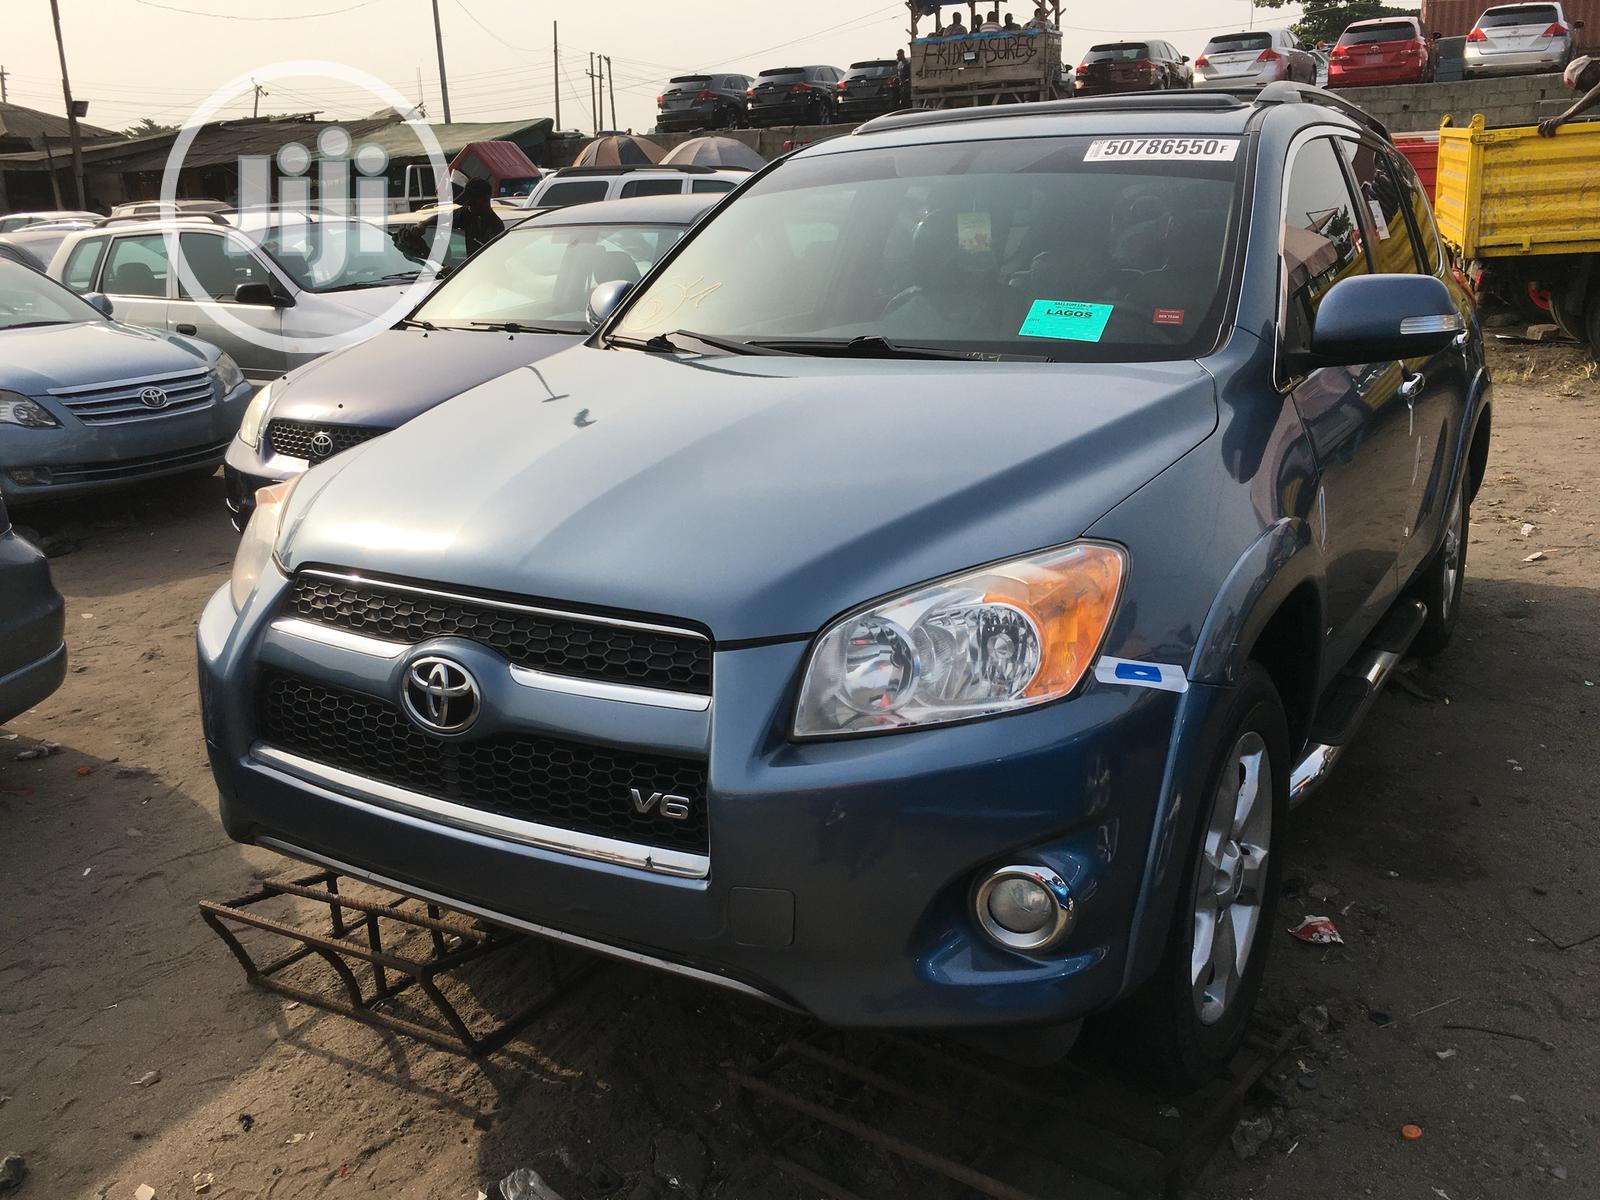 Toyota RAV4 2010 3.5 Limited 4x4 Blue | Cars for sale in Apapa, Lagos State, Nigeria